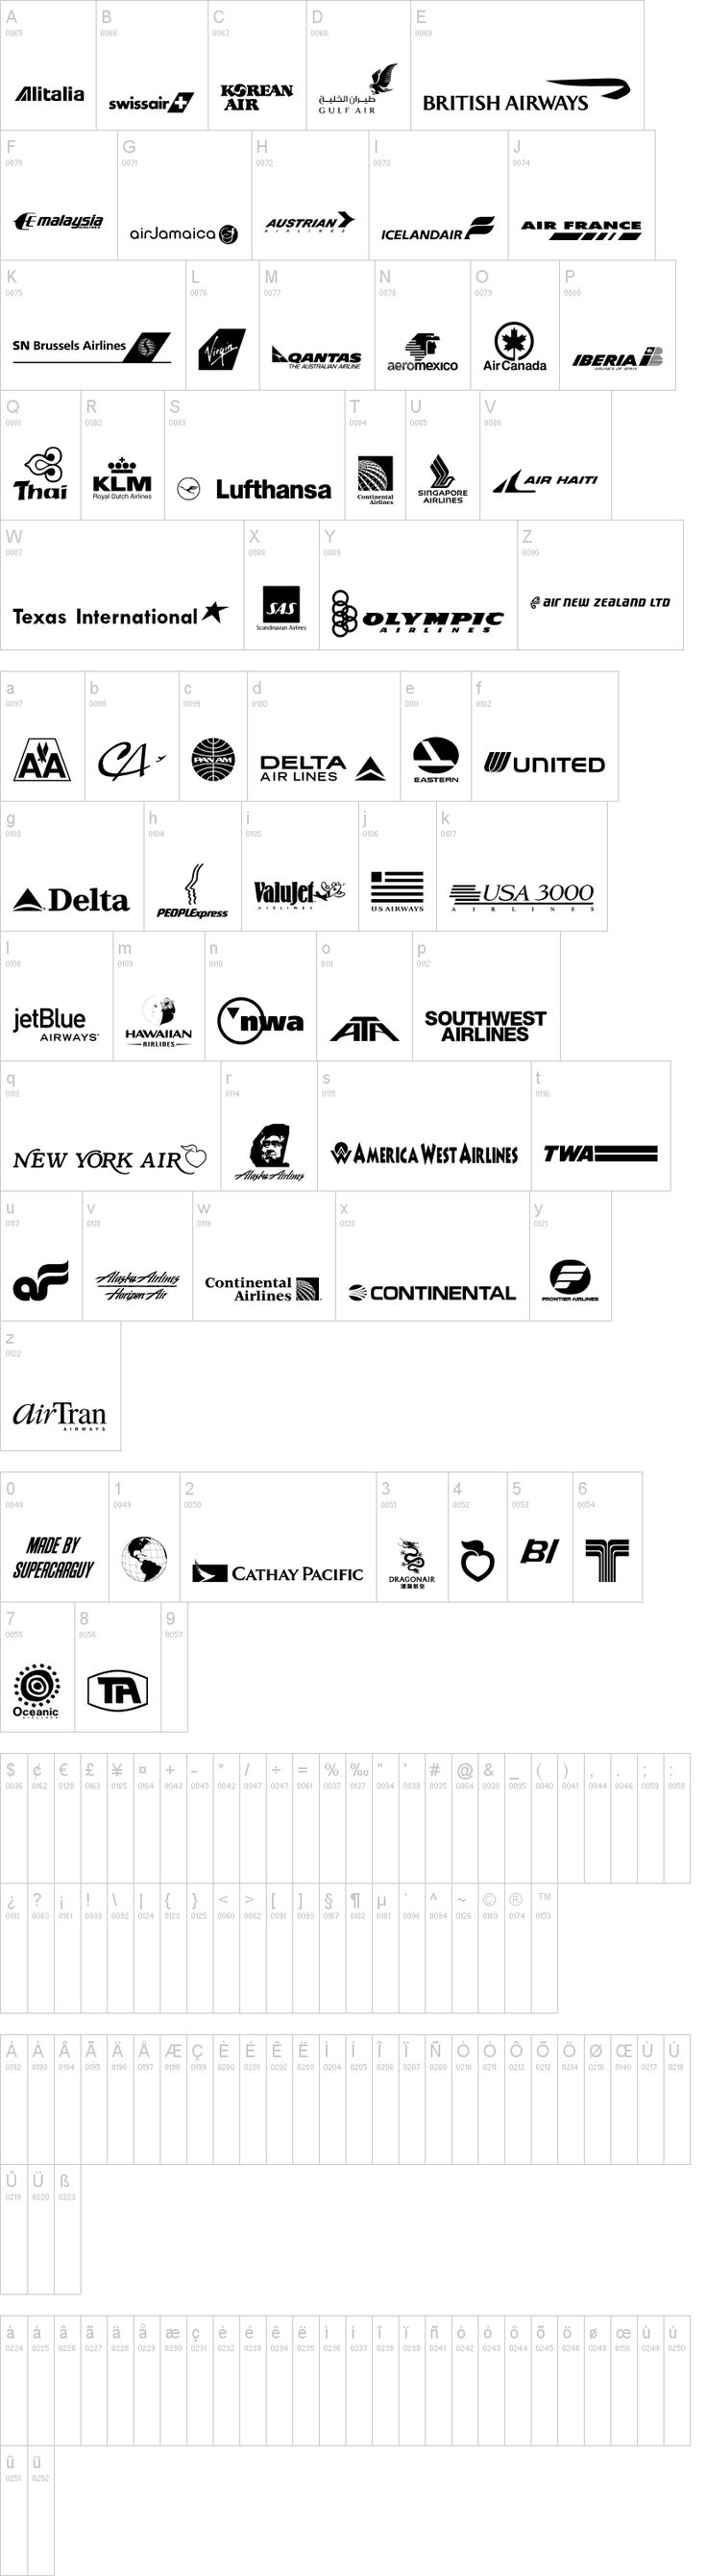 Airline Logos Past and Present